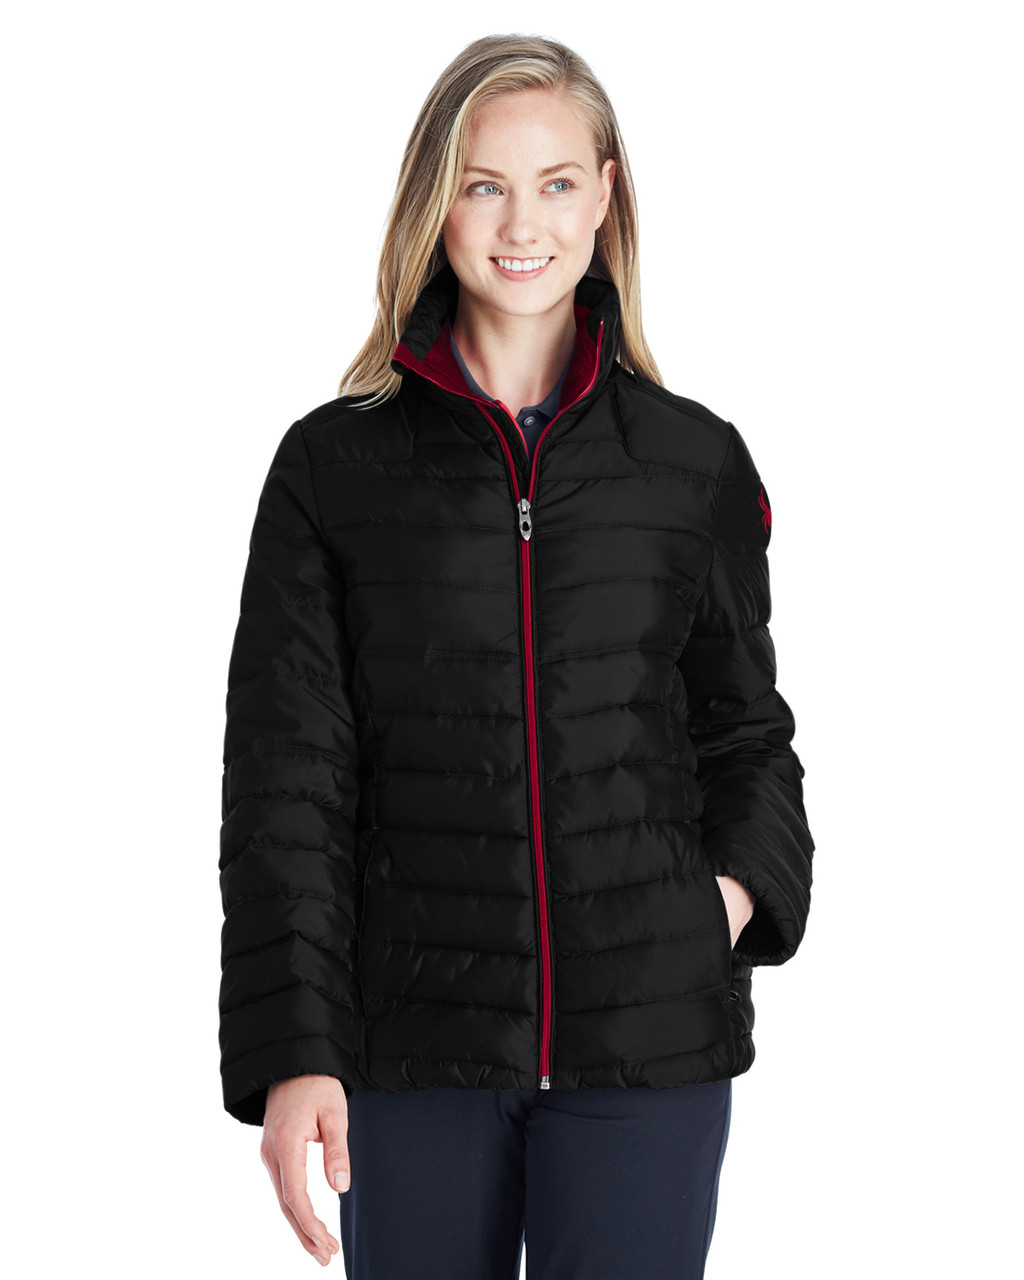 Black/Red - 187336 Spyder Ladies' Supreme Insulated Puffer Jacket | BlankClothing.ca